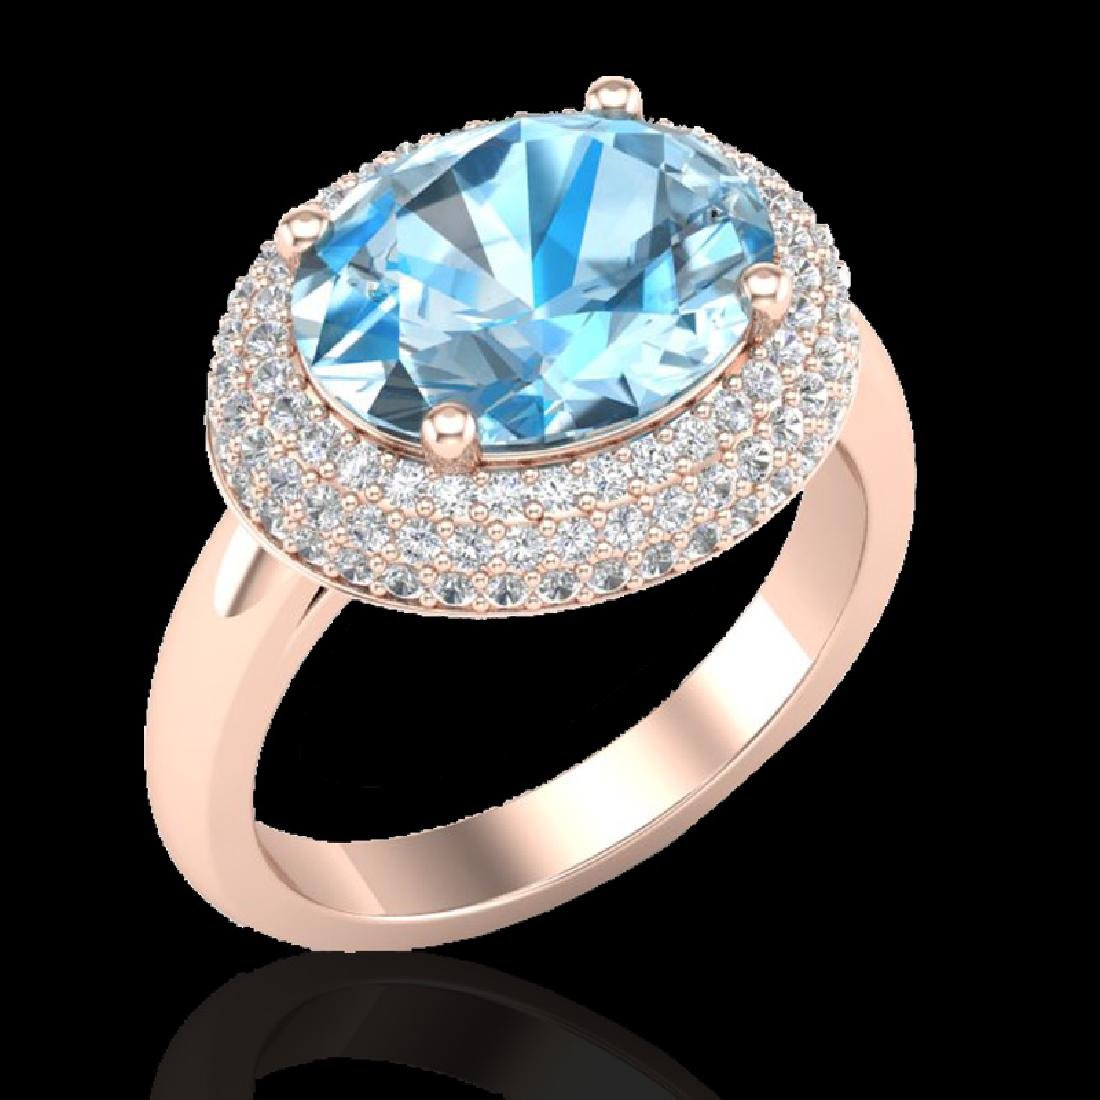 5 CTW Sky Blue Topaz & Micro Pave VS/SI Diamond Ring